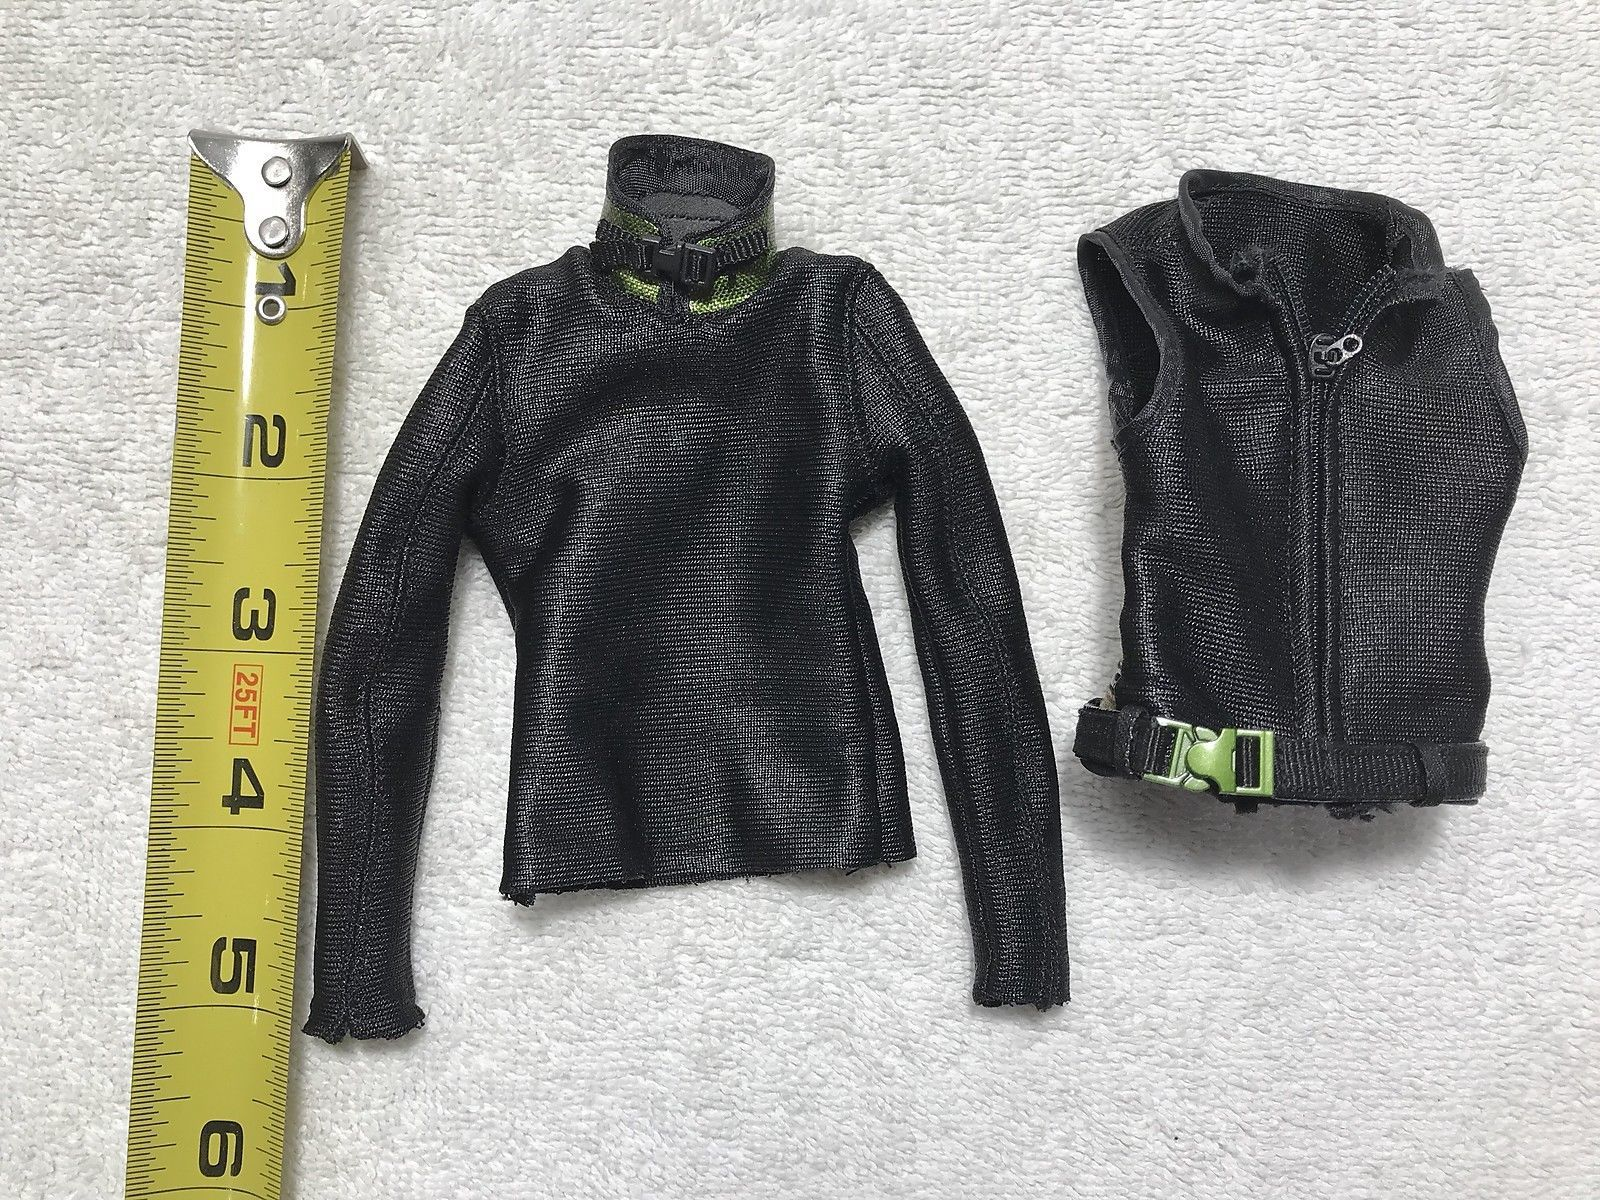 Hot Toys Spider-Man 3 New Goblin Undershirt & Vest Combo 1/6th Scale MMS 151